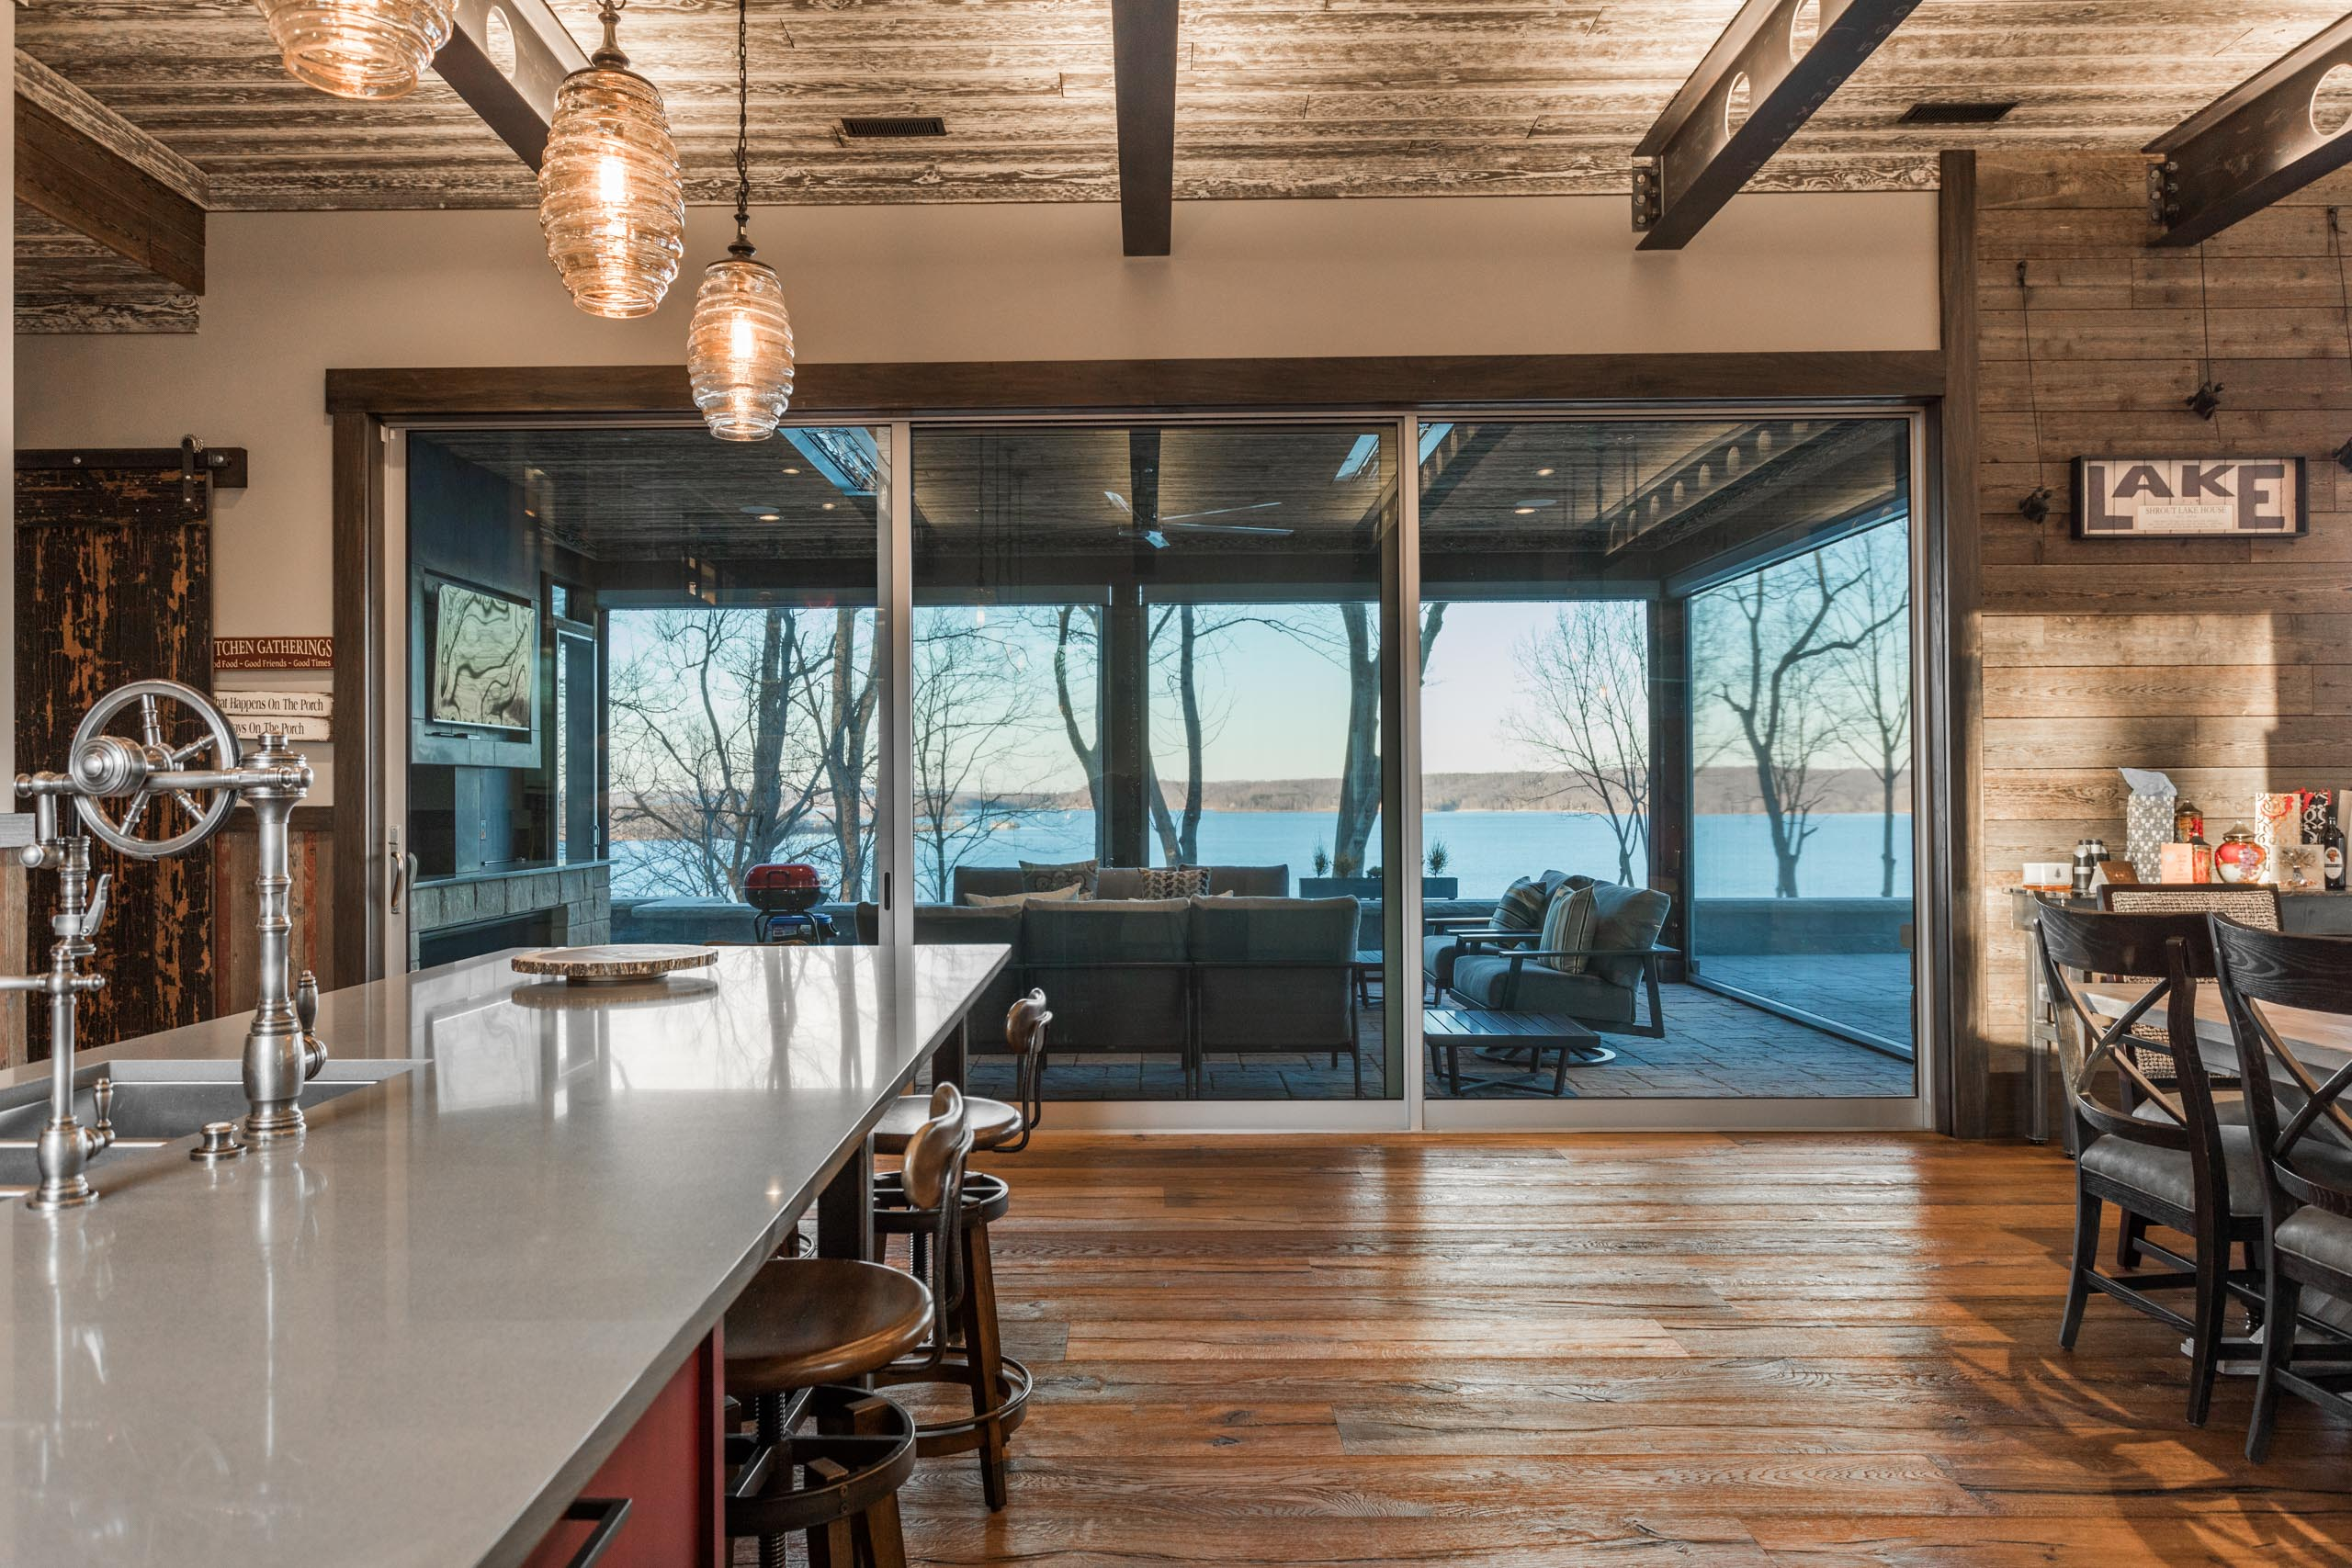 A massive multi-slide door opens from the kitchen/living area to a giant outdoor living space overlooking the lake.